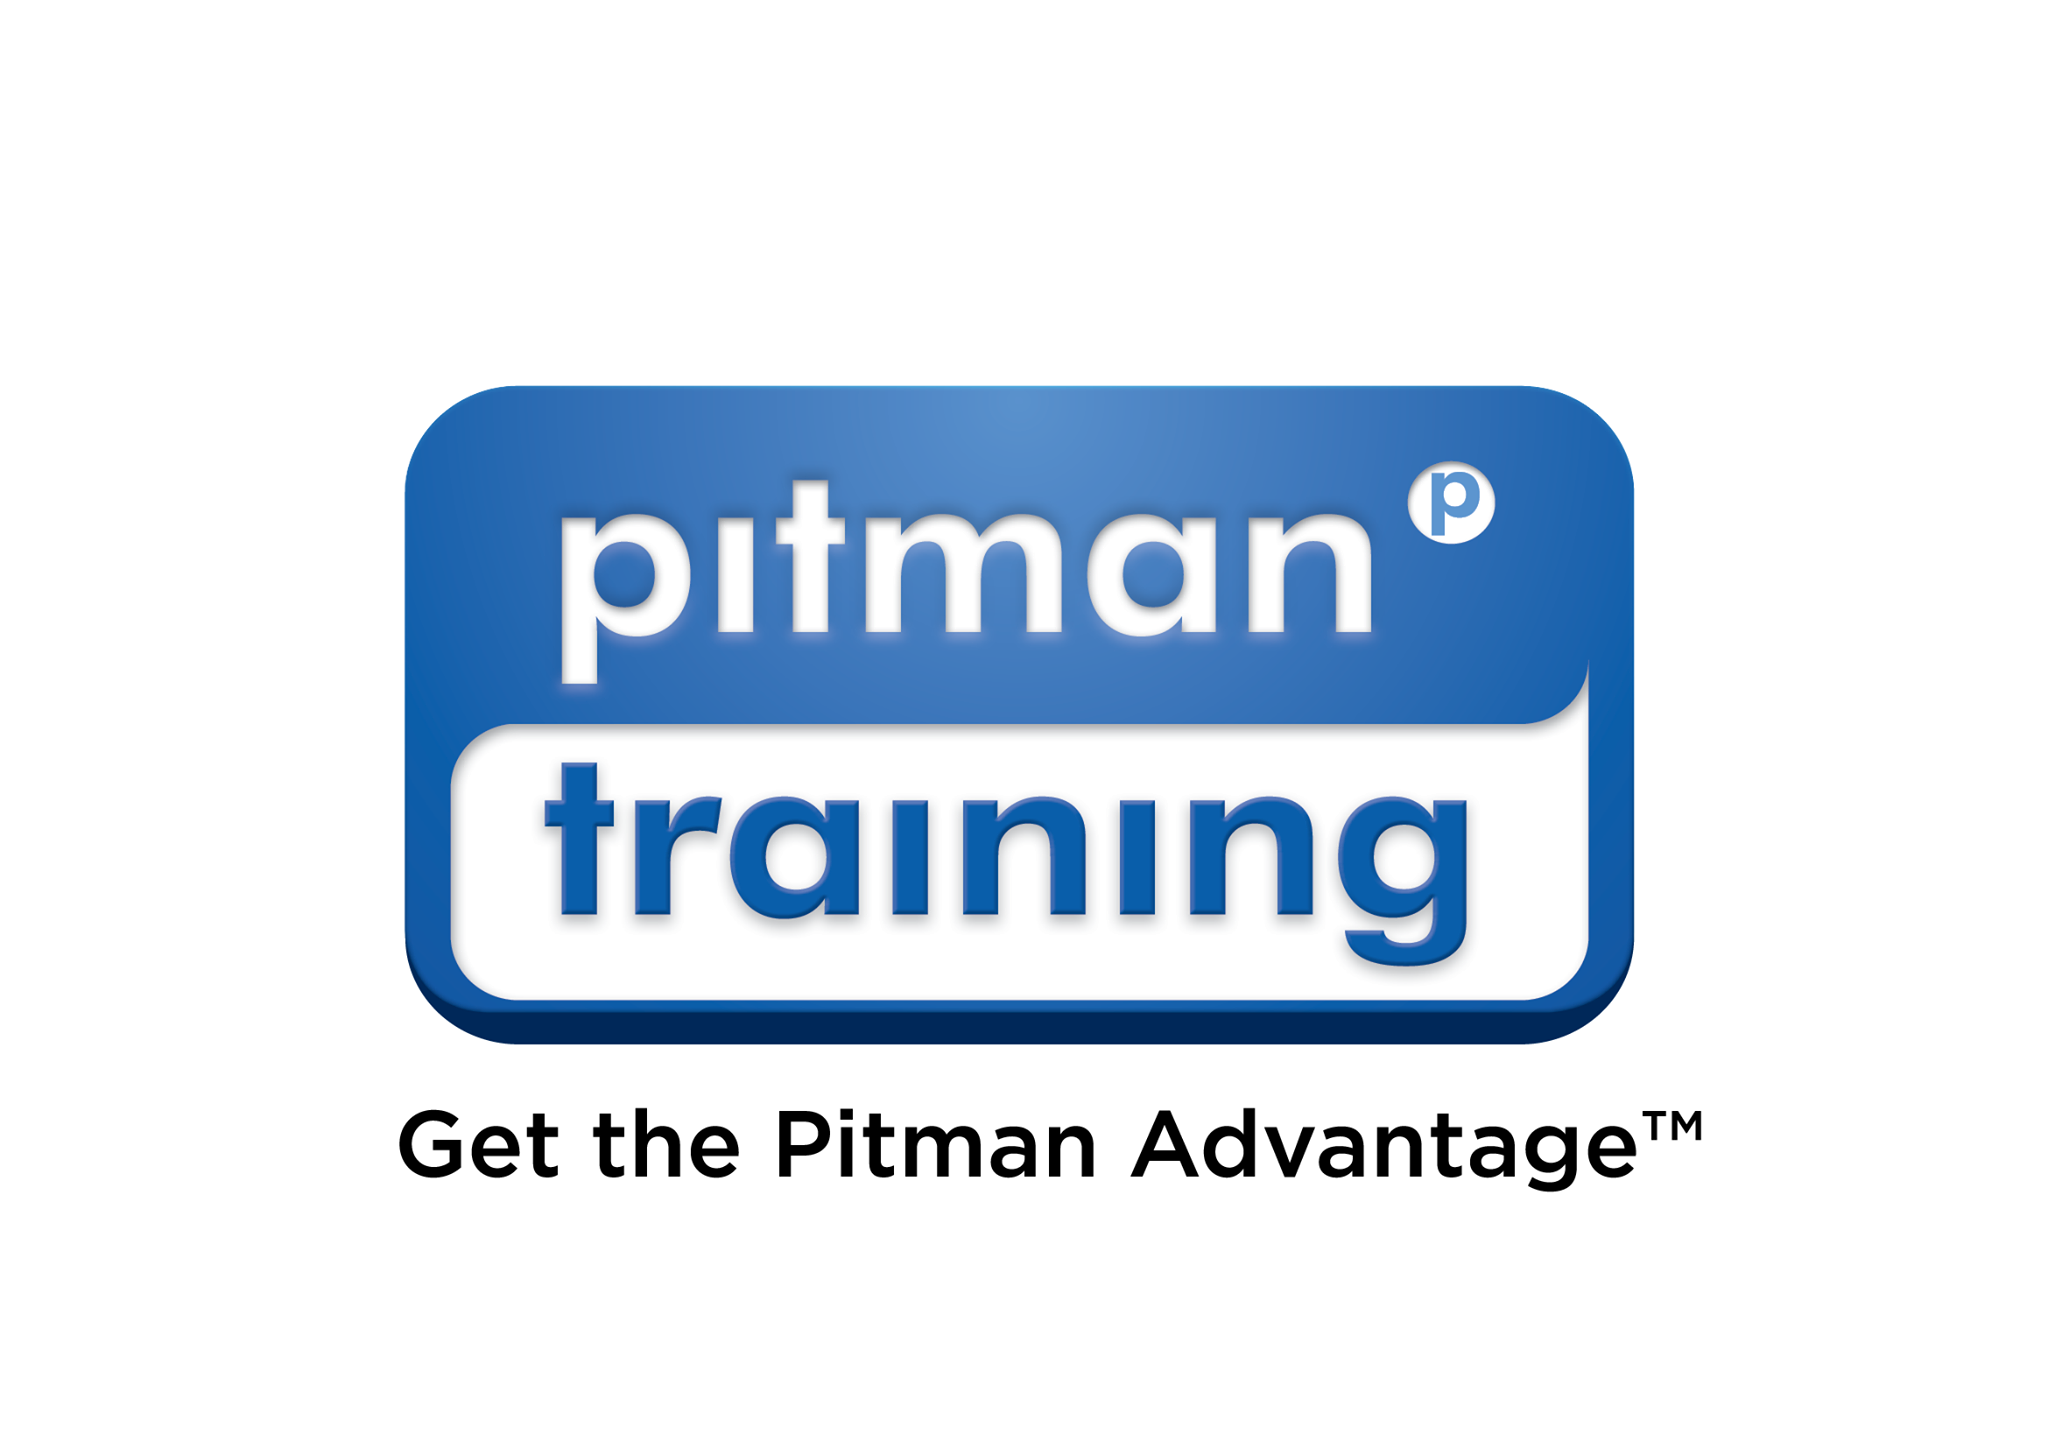 Pitman Training Barcelona